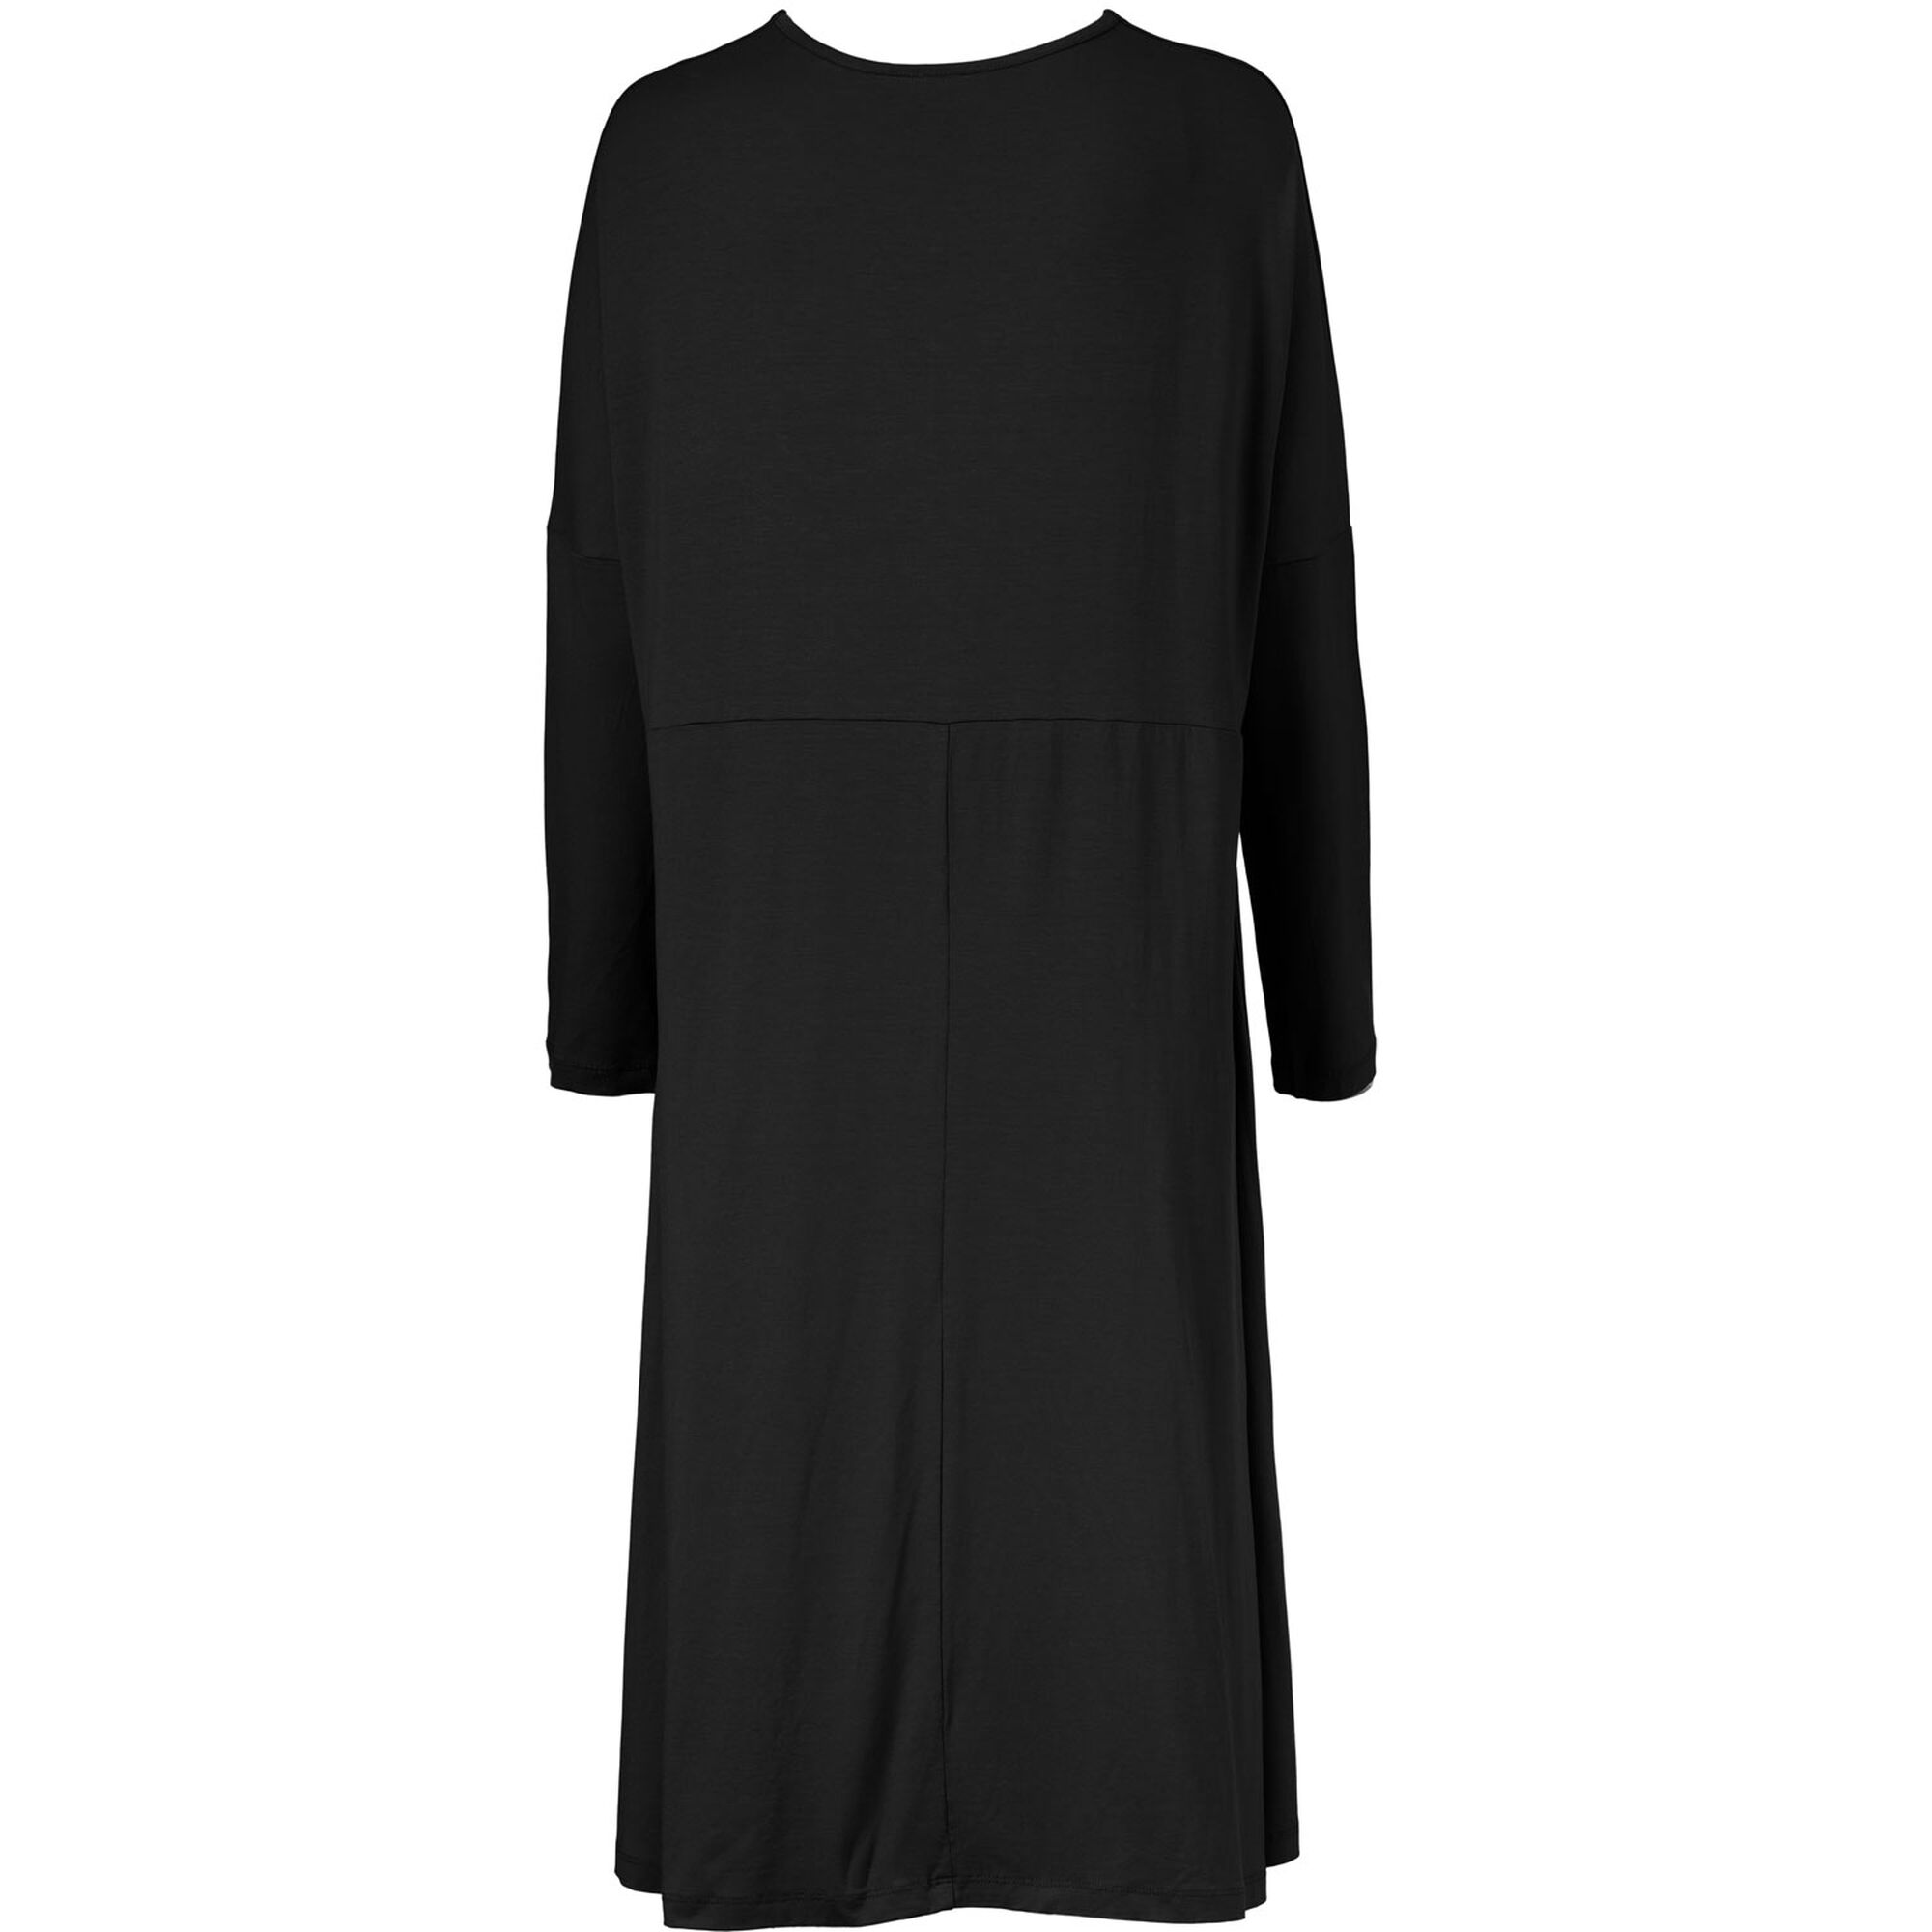 NABSA DRESS, Black, hi-res